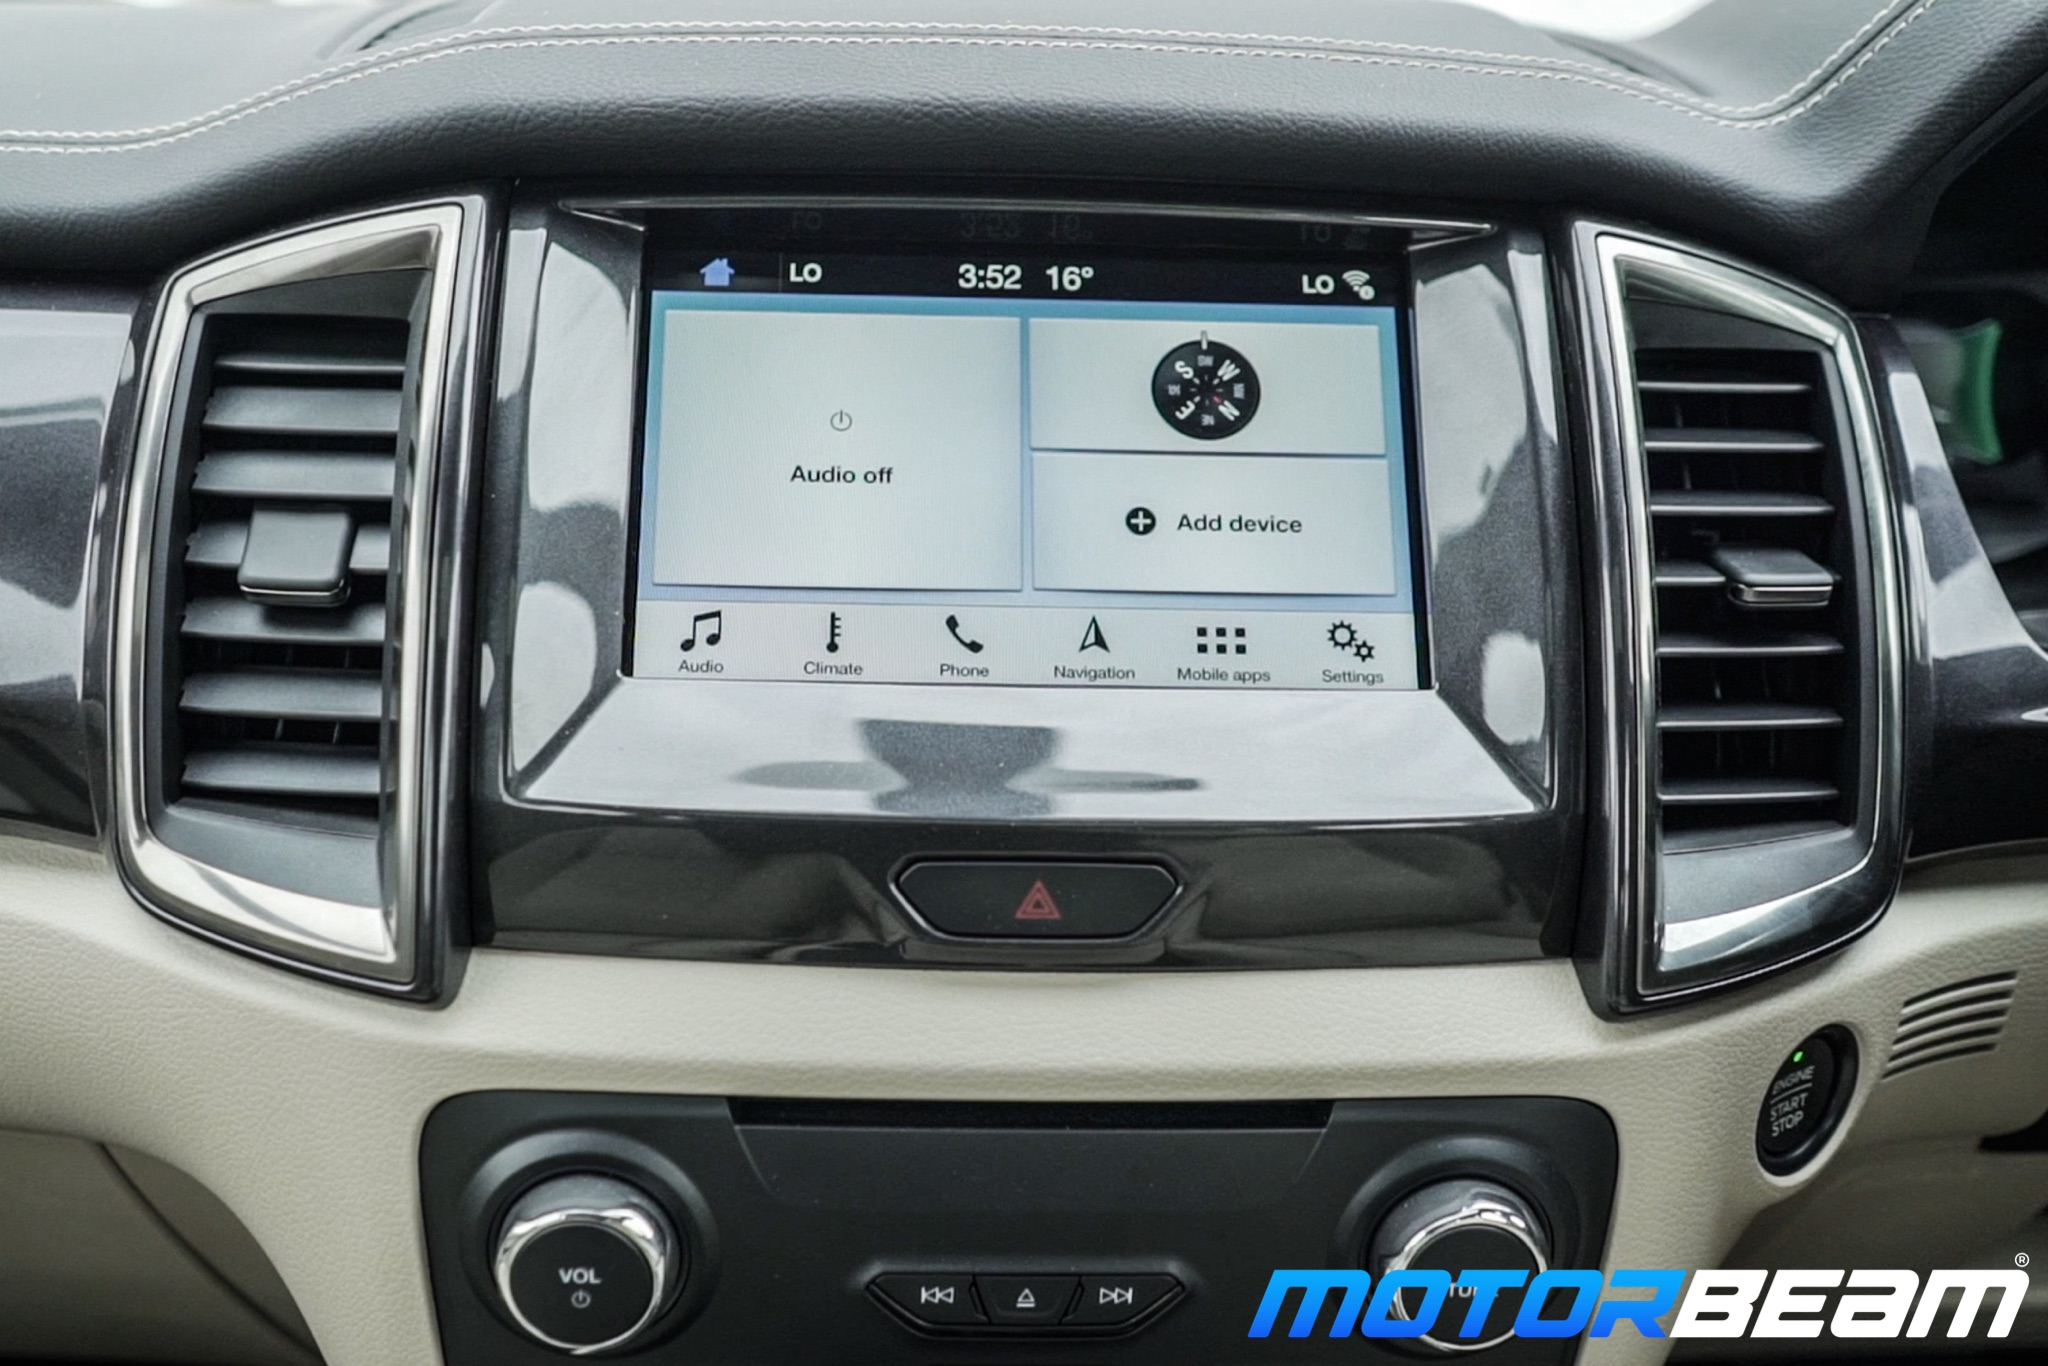 2019 Ford Endeavour Touchscreen